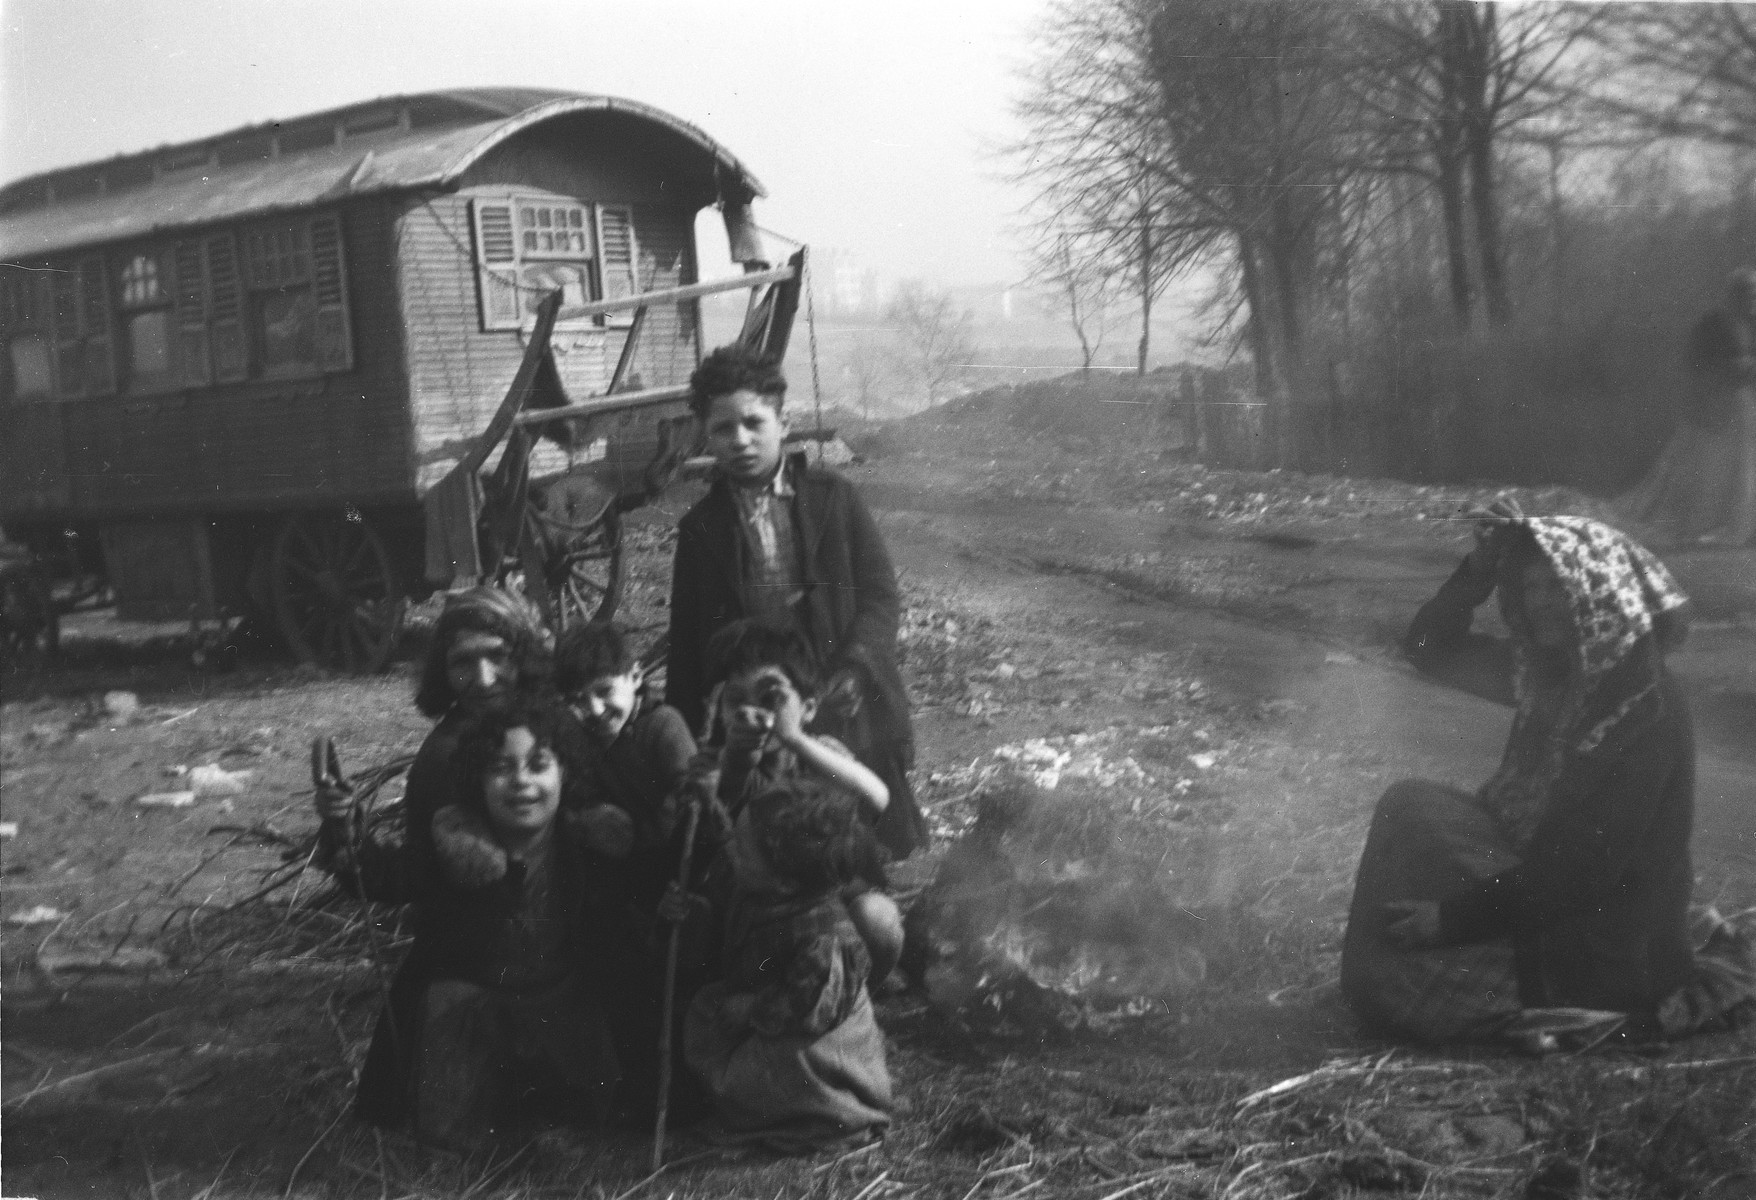 A group of  Romani (Gypsy) children and a Romani woman sit on the ground next to a camp fire.